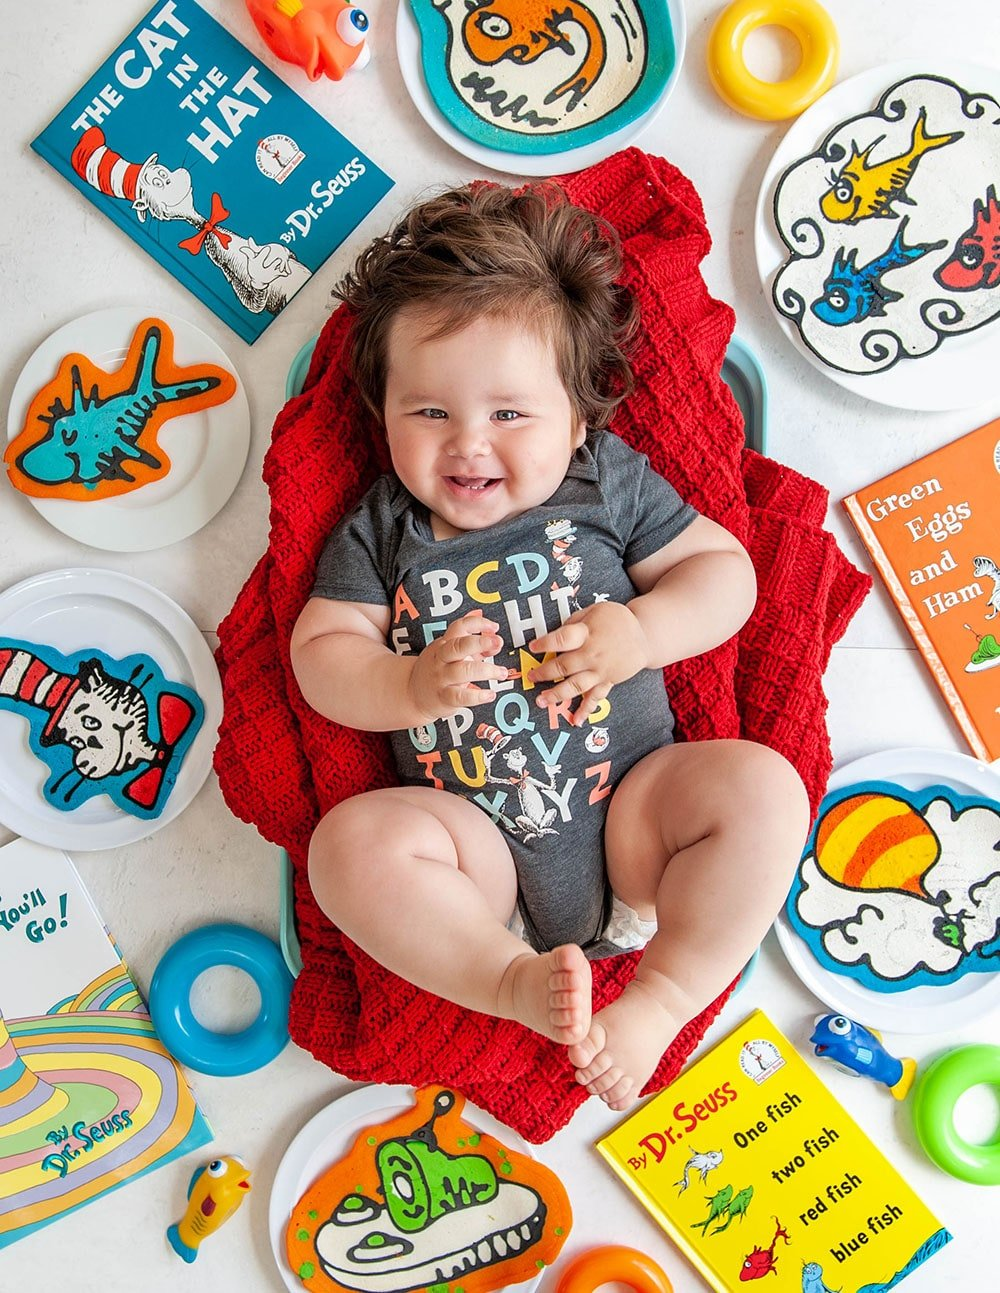 baby boy on red blanket with pancake art and dr seuss books surrounding him